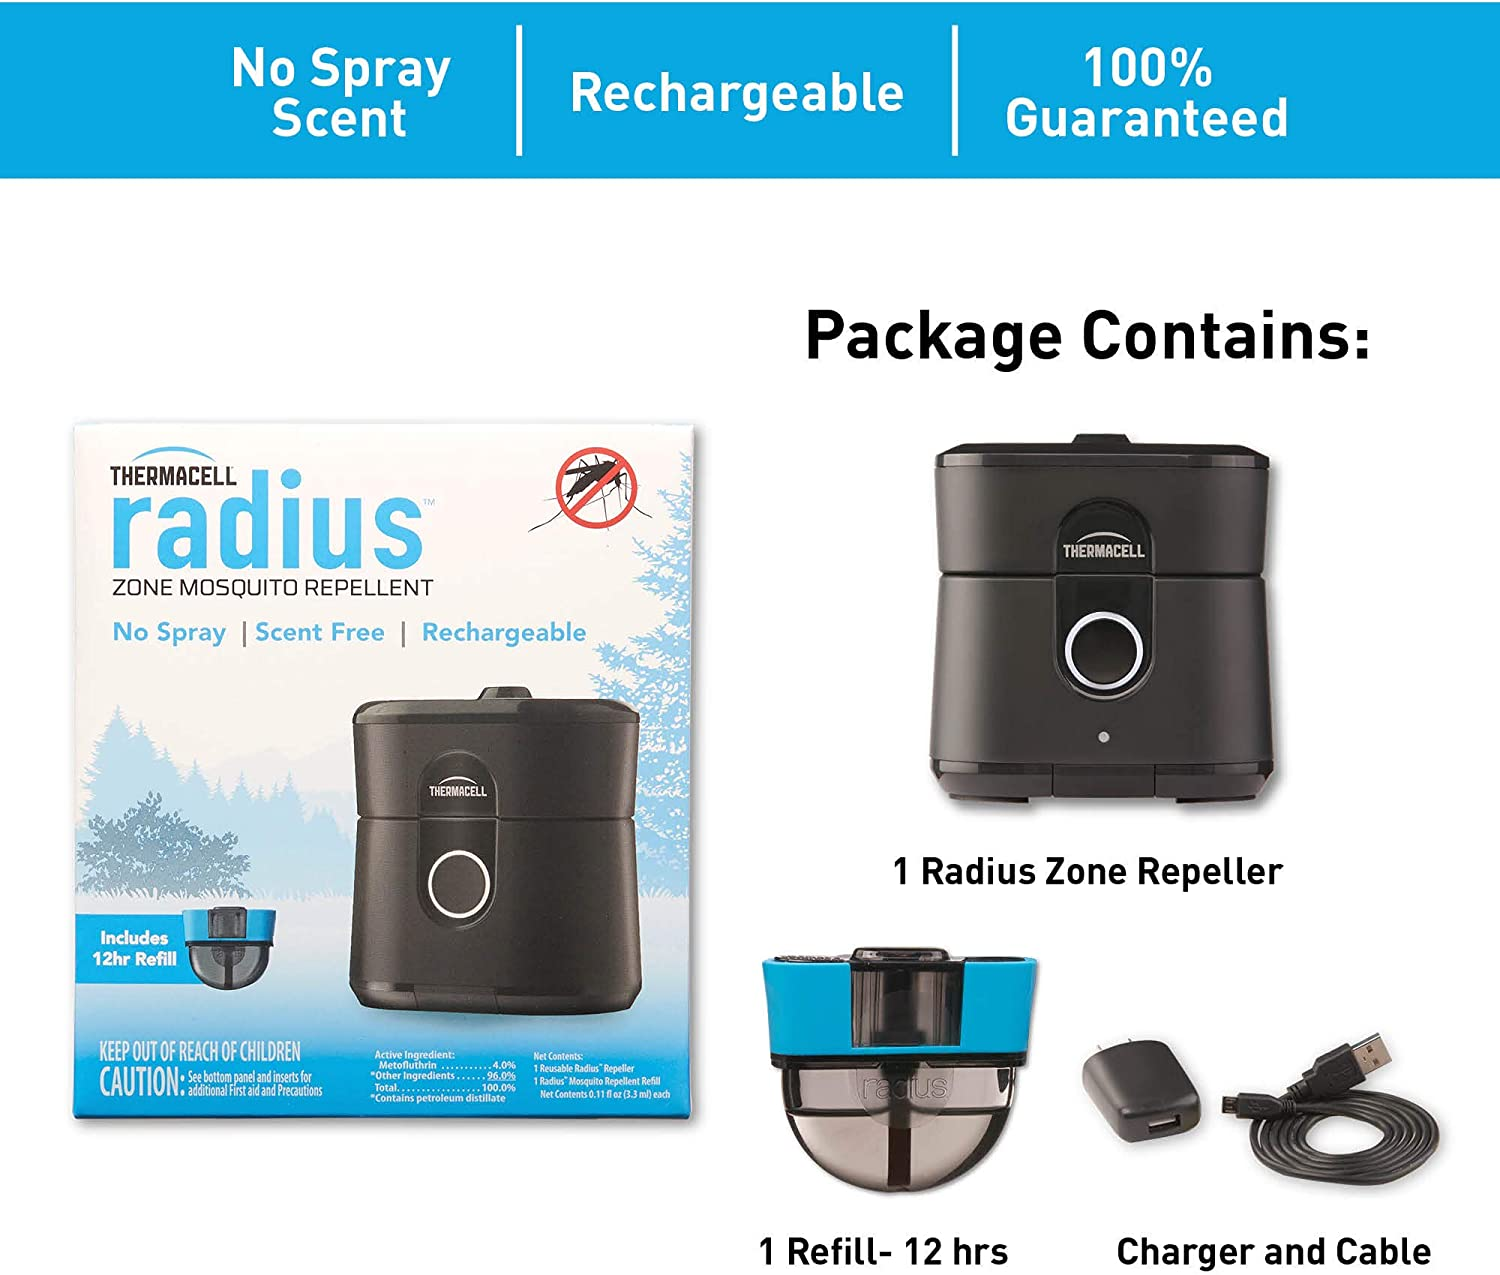 Scent and DEET-Free Gen 2.0 Black; No Spray Mosquito Repellent; Rechargeable; Protect Outdoor Areas from Insects for 6.5+ Hours Per Charge; Easy to Use Radius Zone Mosquito Repeller from Thermacell